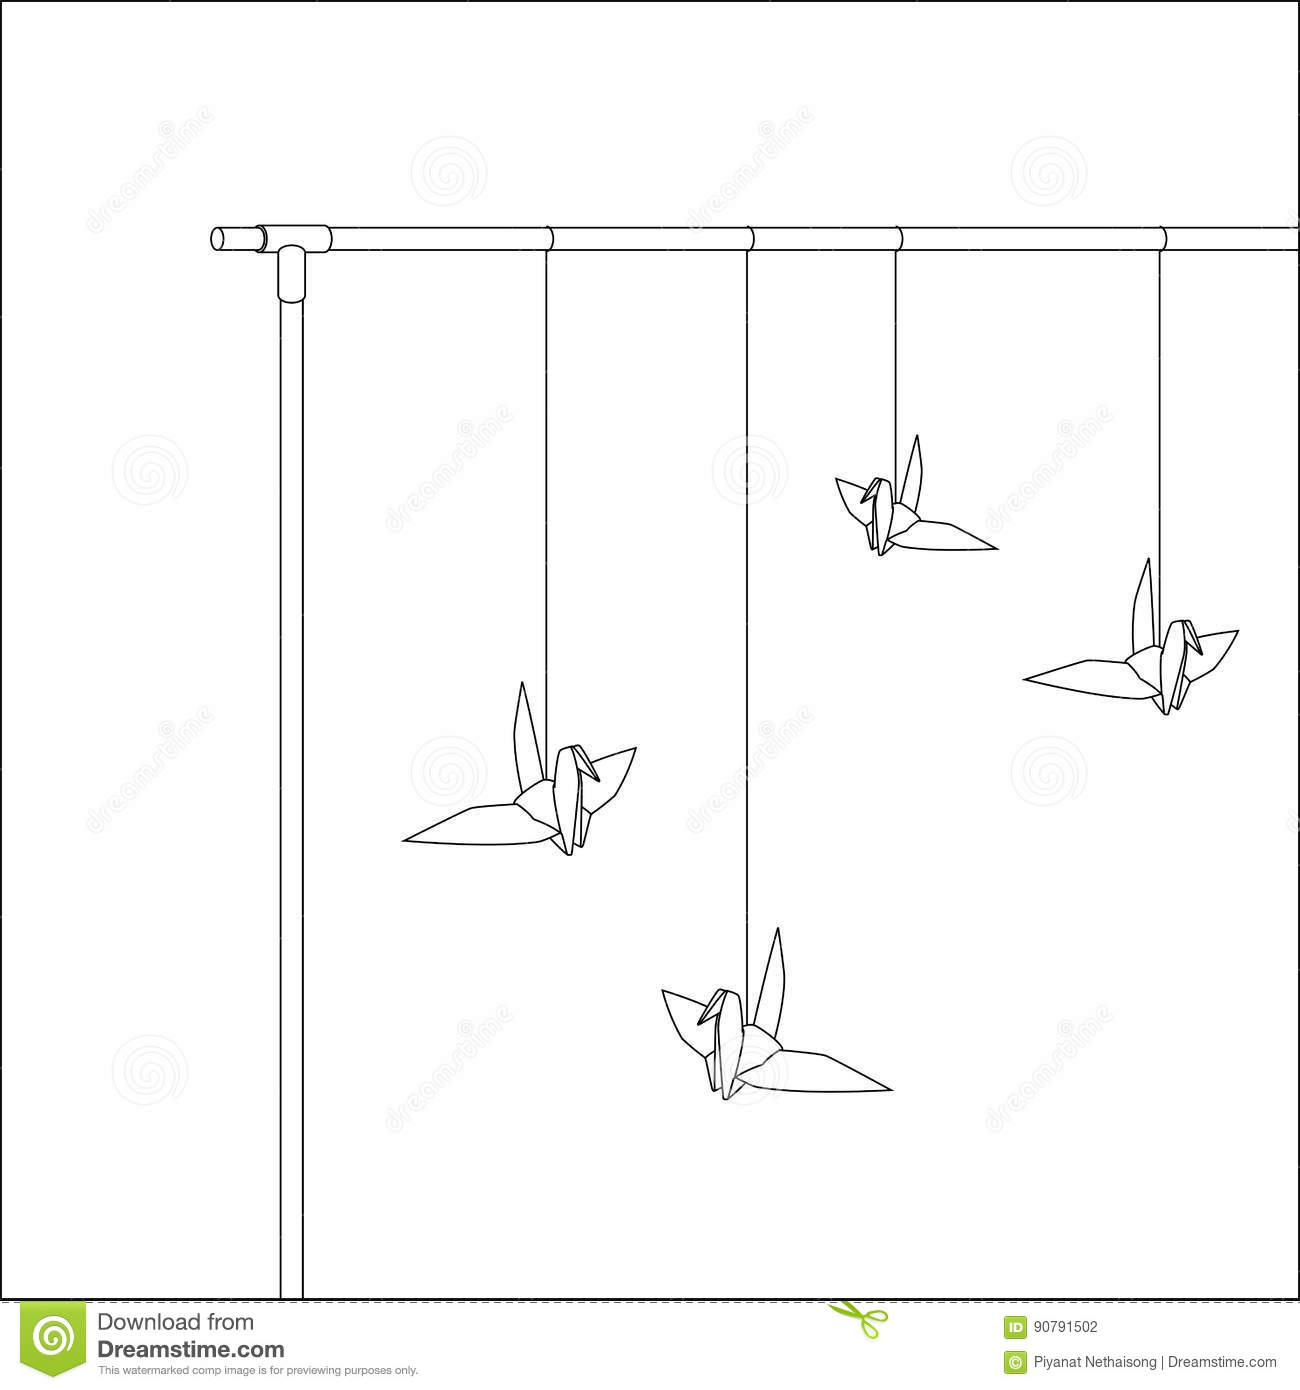 balancing bird template - newtons cartoons illustrations vector stock images